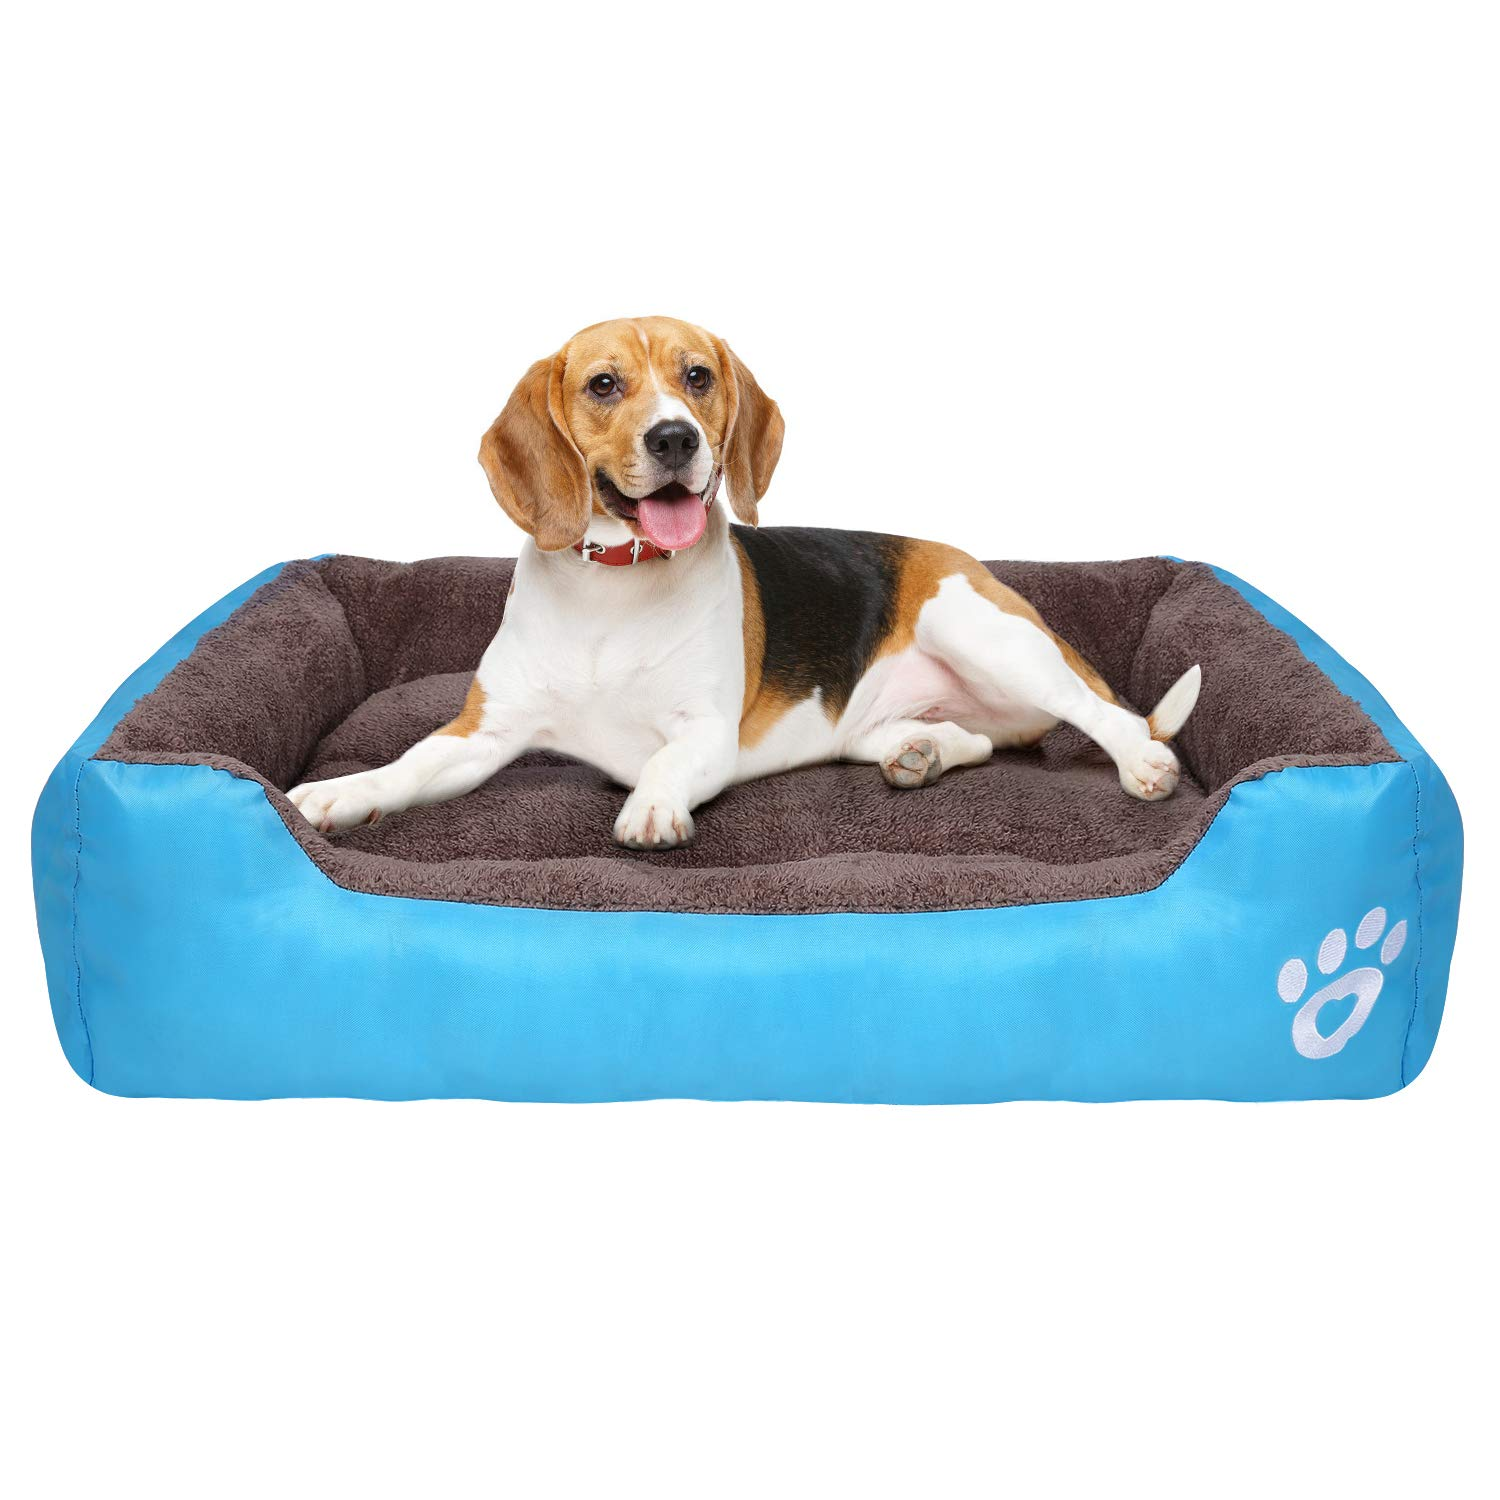 PUPPBUDD Pet Dog Bed for Medium Dogs(XXL-Large for Large Dogs),Dog Bed with Machine Washable Comfortable and Safety for…